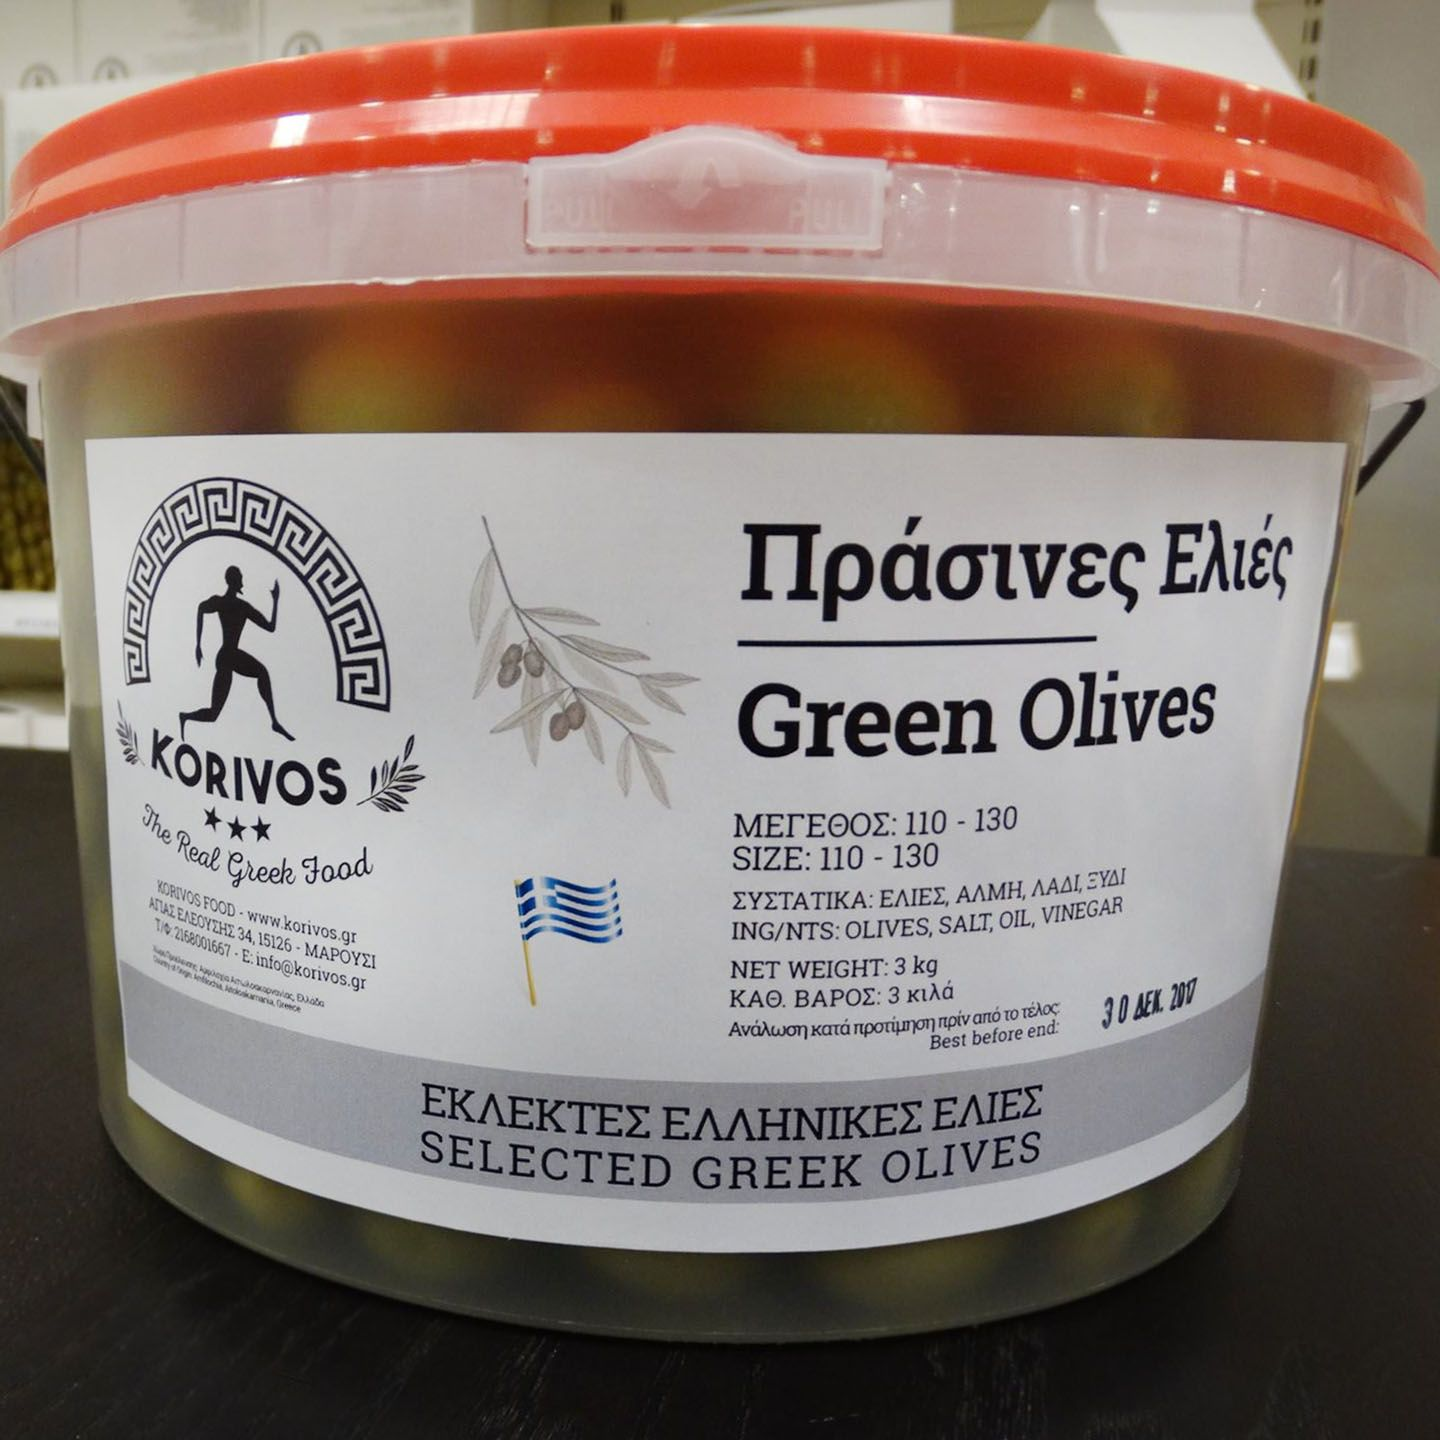 green olives 110 130 korivos